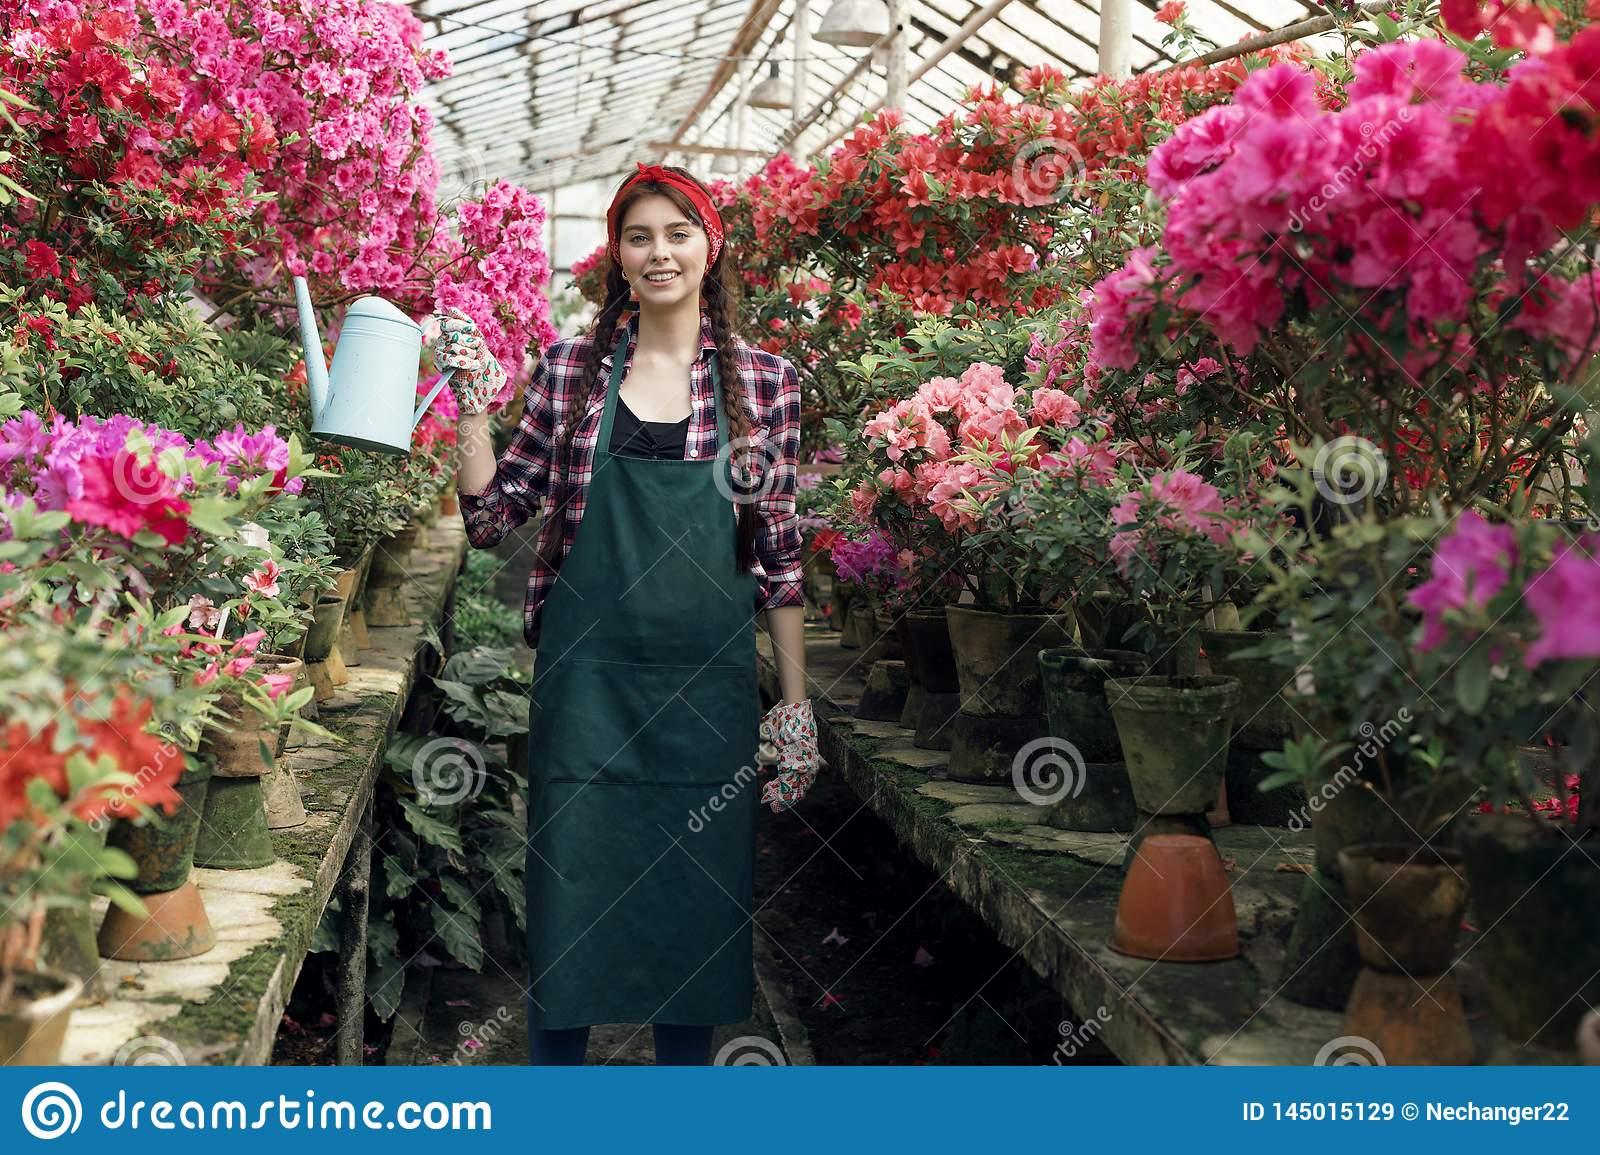 Attractive young woman gardener in work clothes with red headband watering colorful flowers in greenhouse